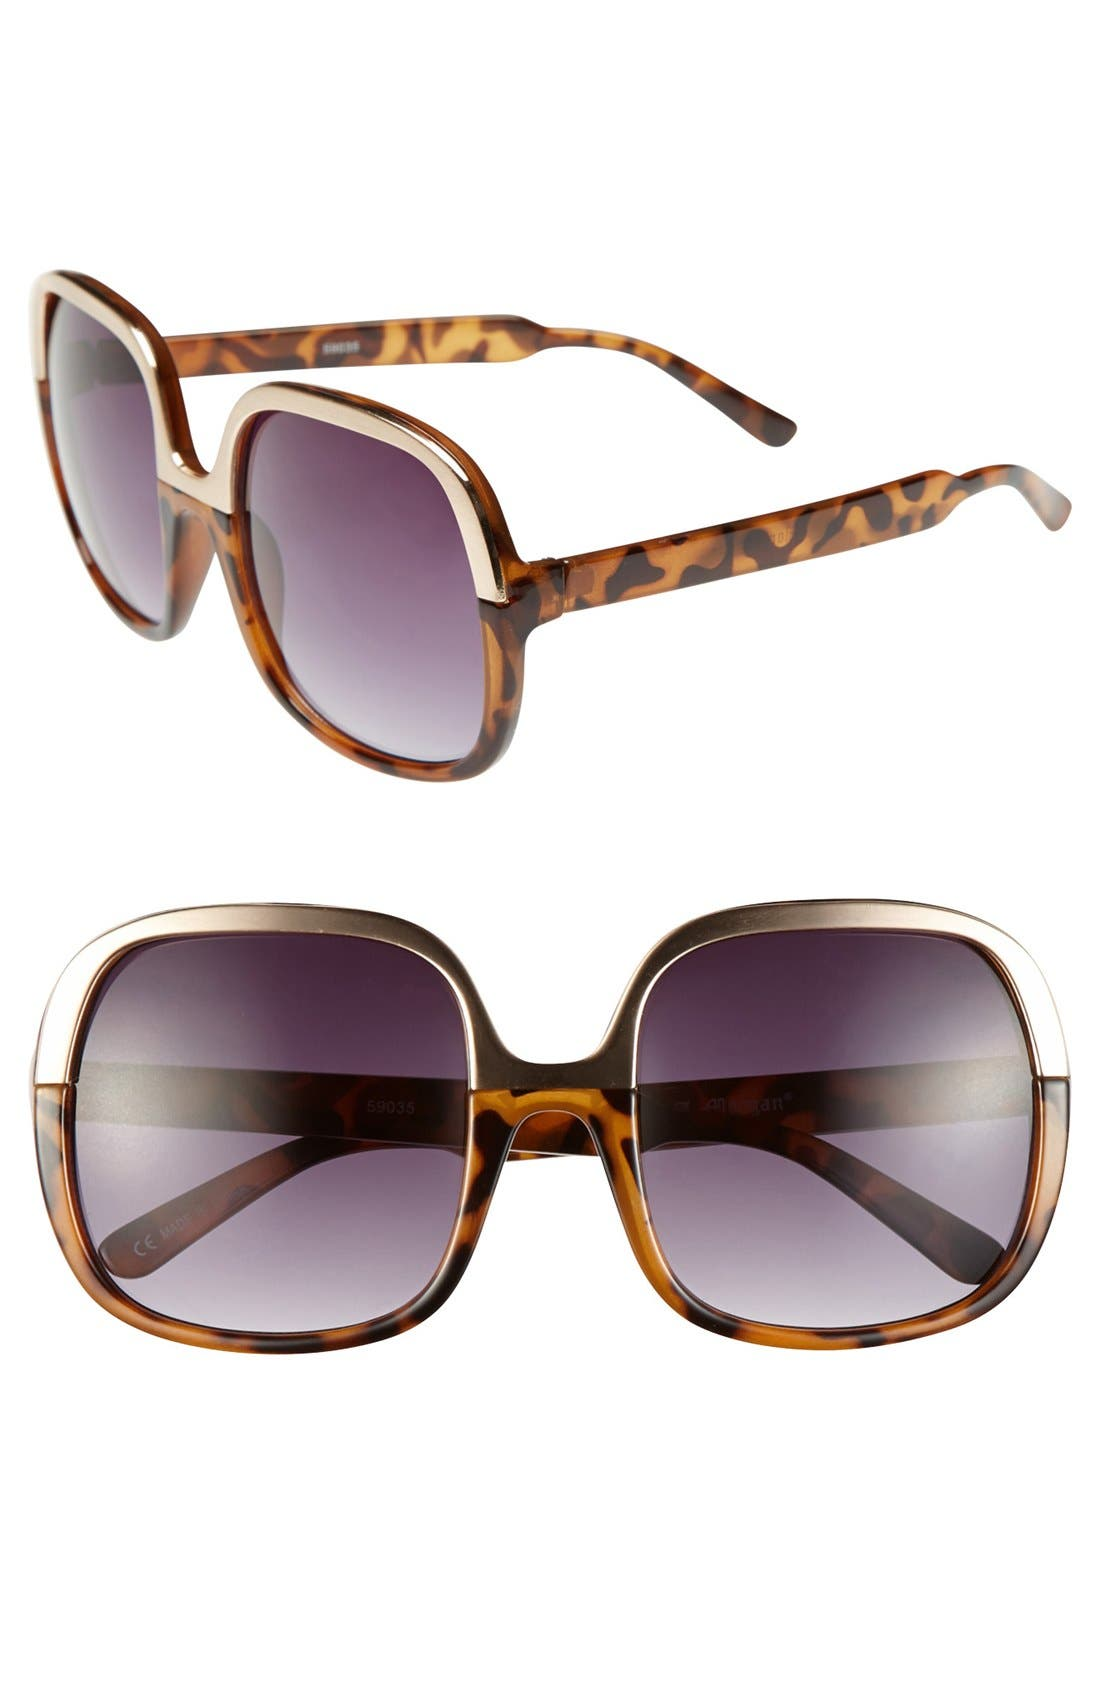 Main Image - A.J. Morgan 'Maya' 55mm Sunglasses